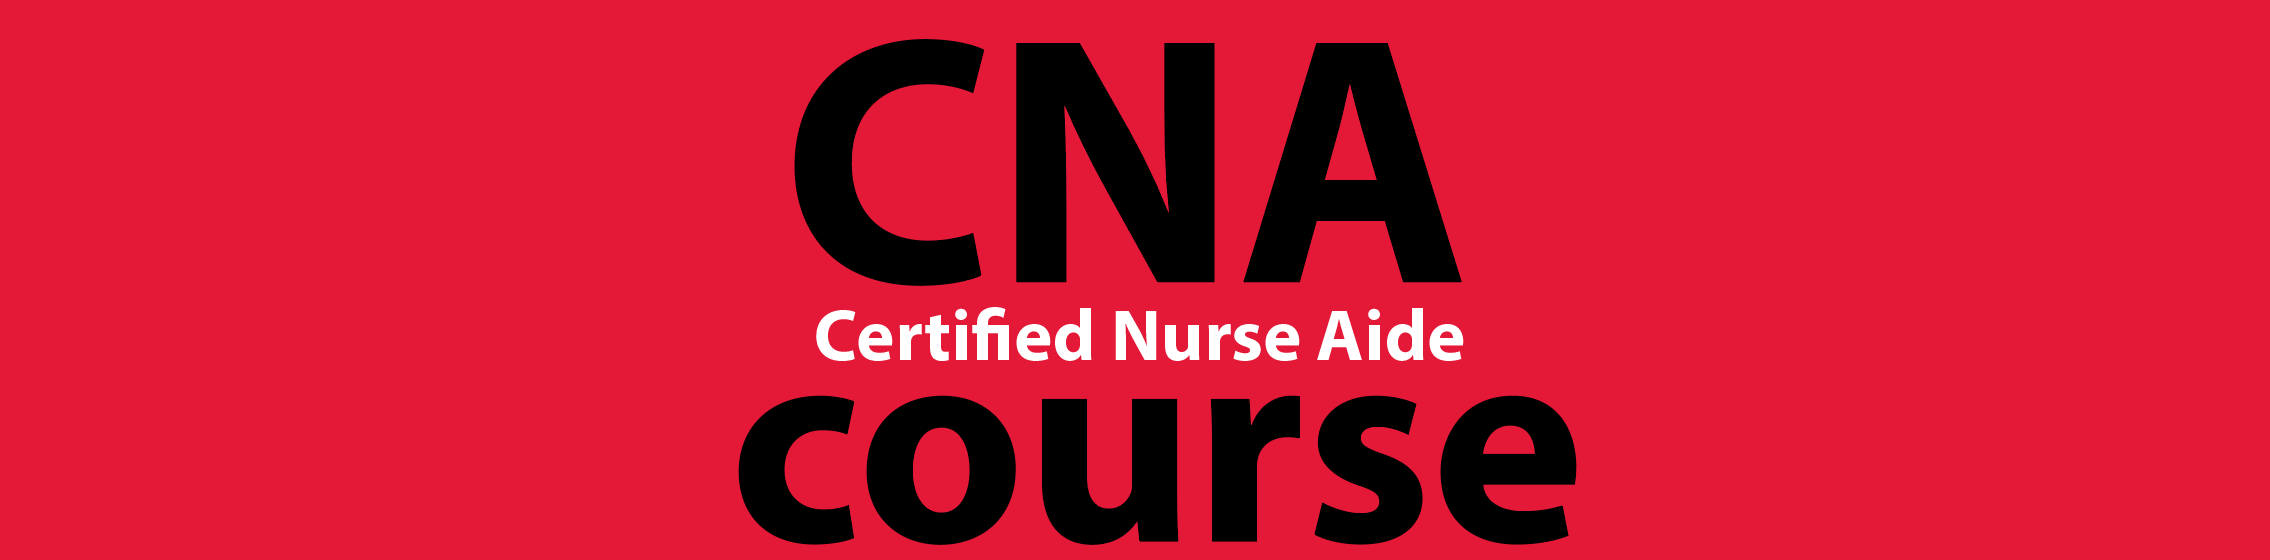 certified nurse aide course